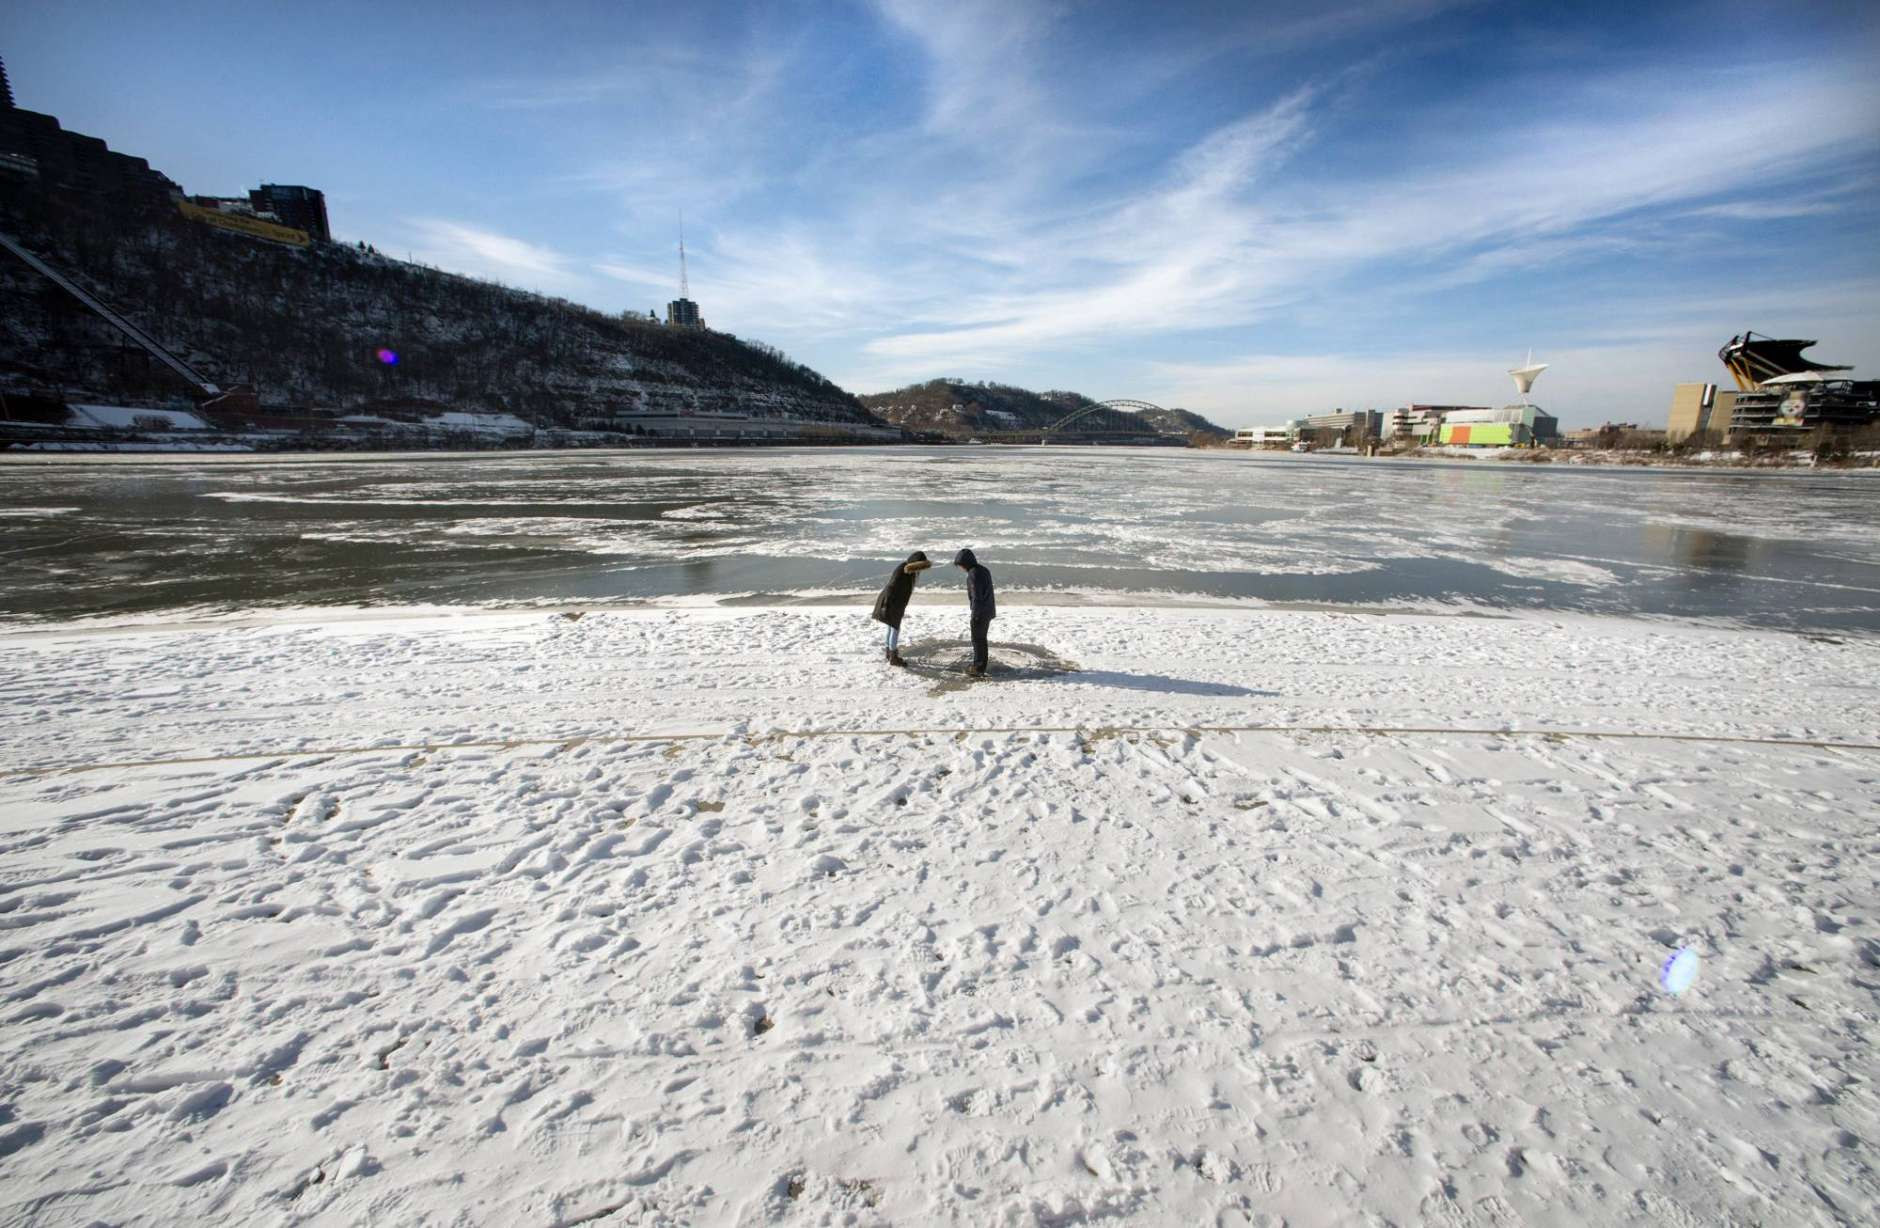 Samantha Ritter of Robinson gave Matthew Sun his first glimpse of Pittsburgh's Point, which was snow-covered and frozen on Tuesday, Jan. 2, 2018. Sun is from Sterling, Va., near Washington DC.(Steve Mellon/Post-Gazette via AP)